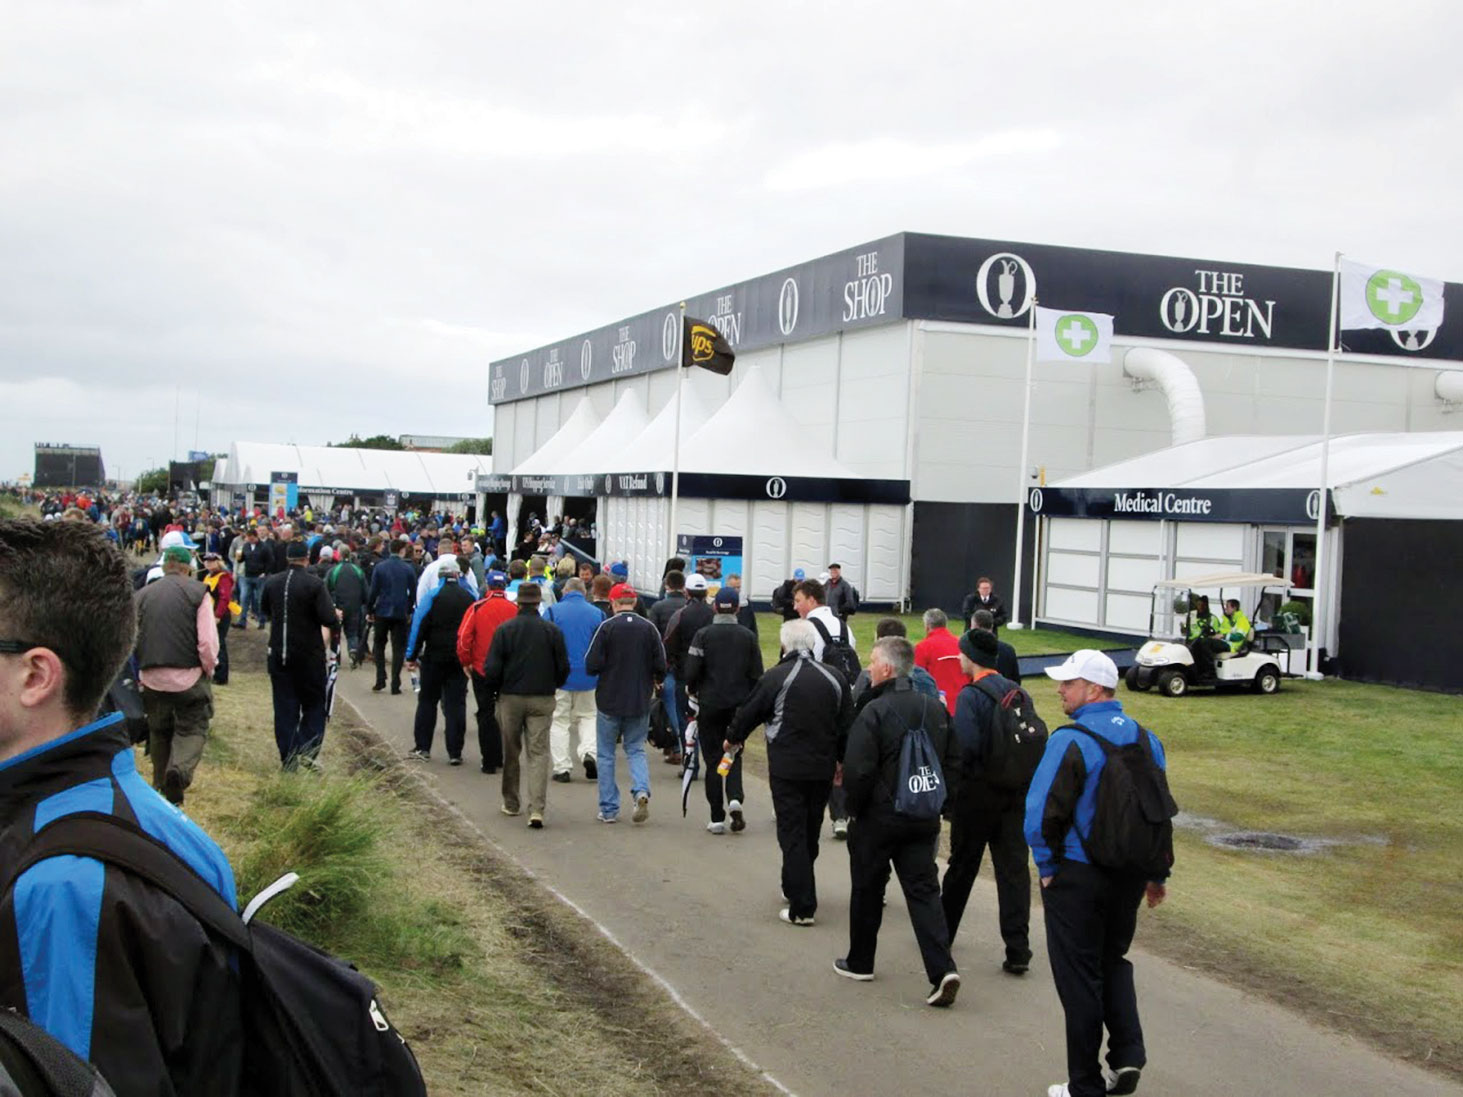 The British Open; photo by David Laschinger